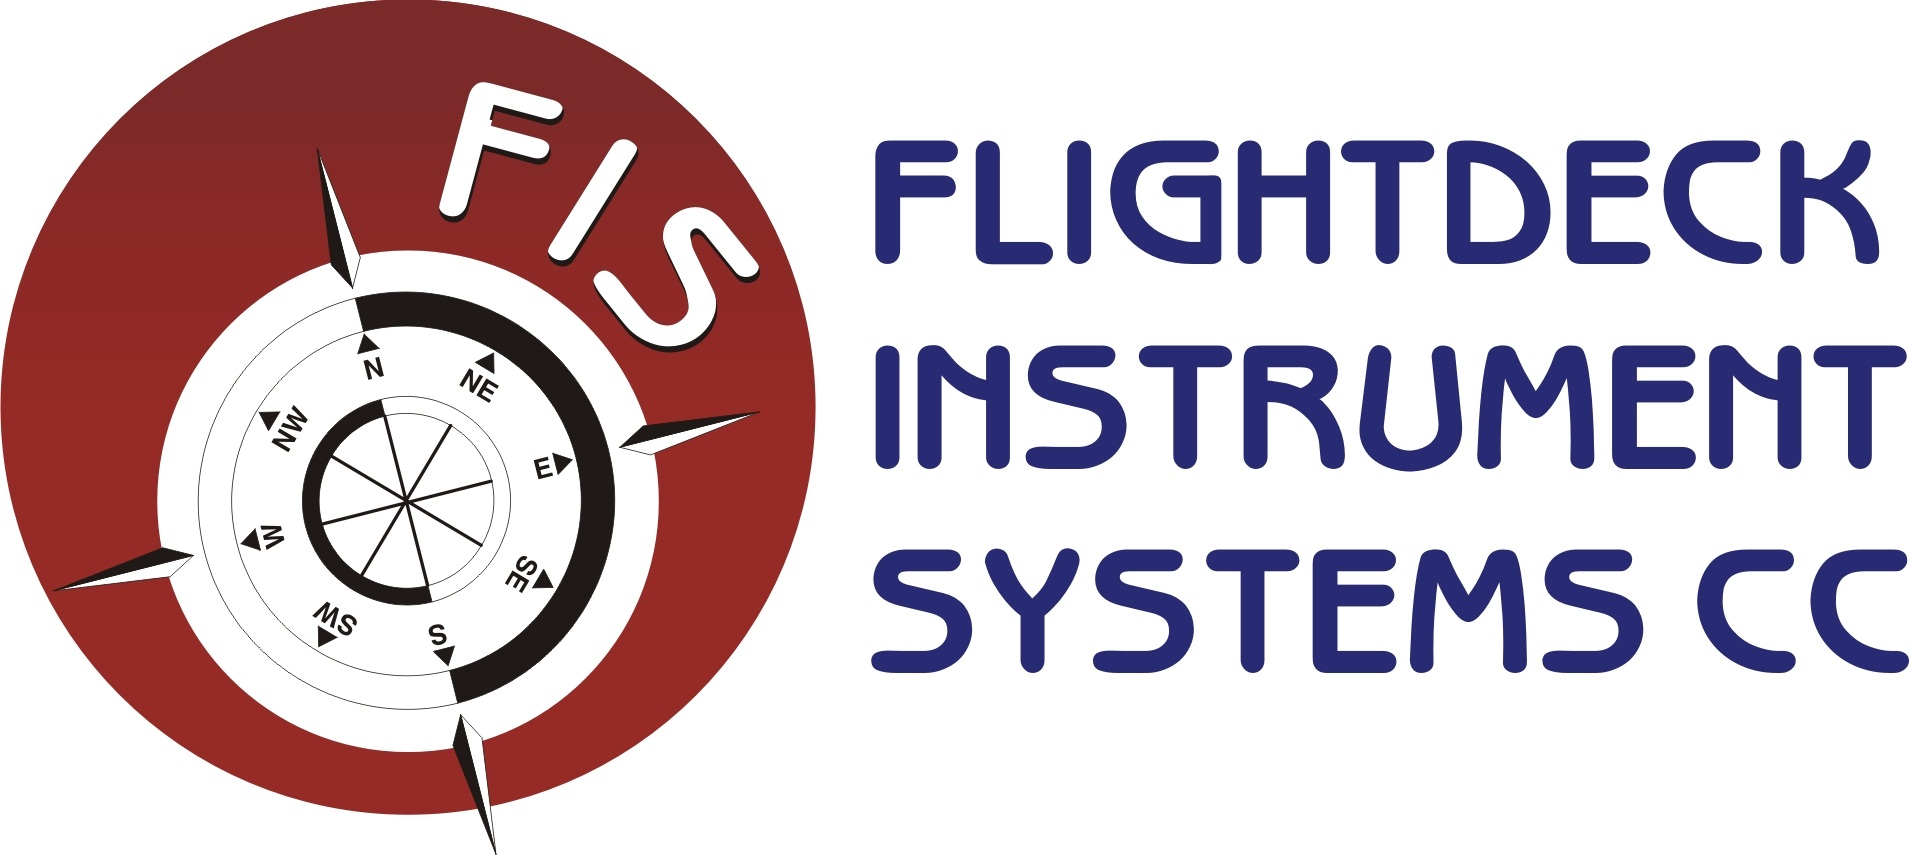 Flightdeck Instrument Systems